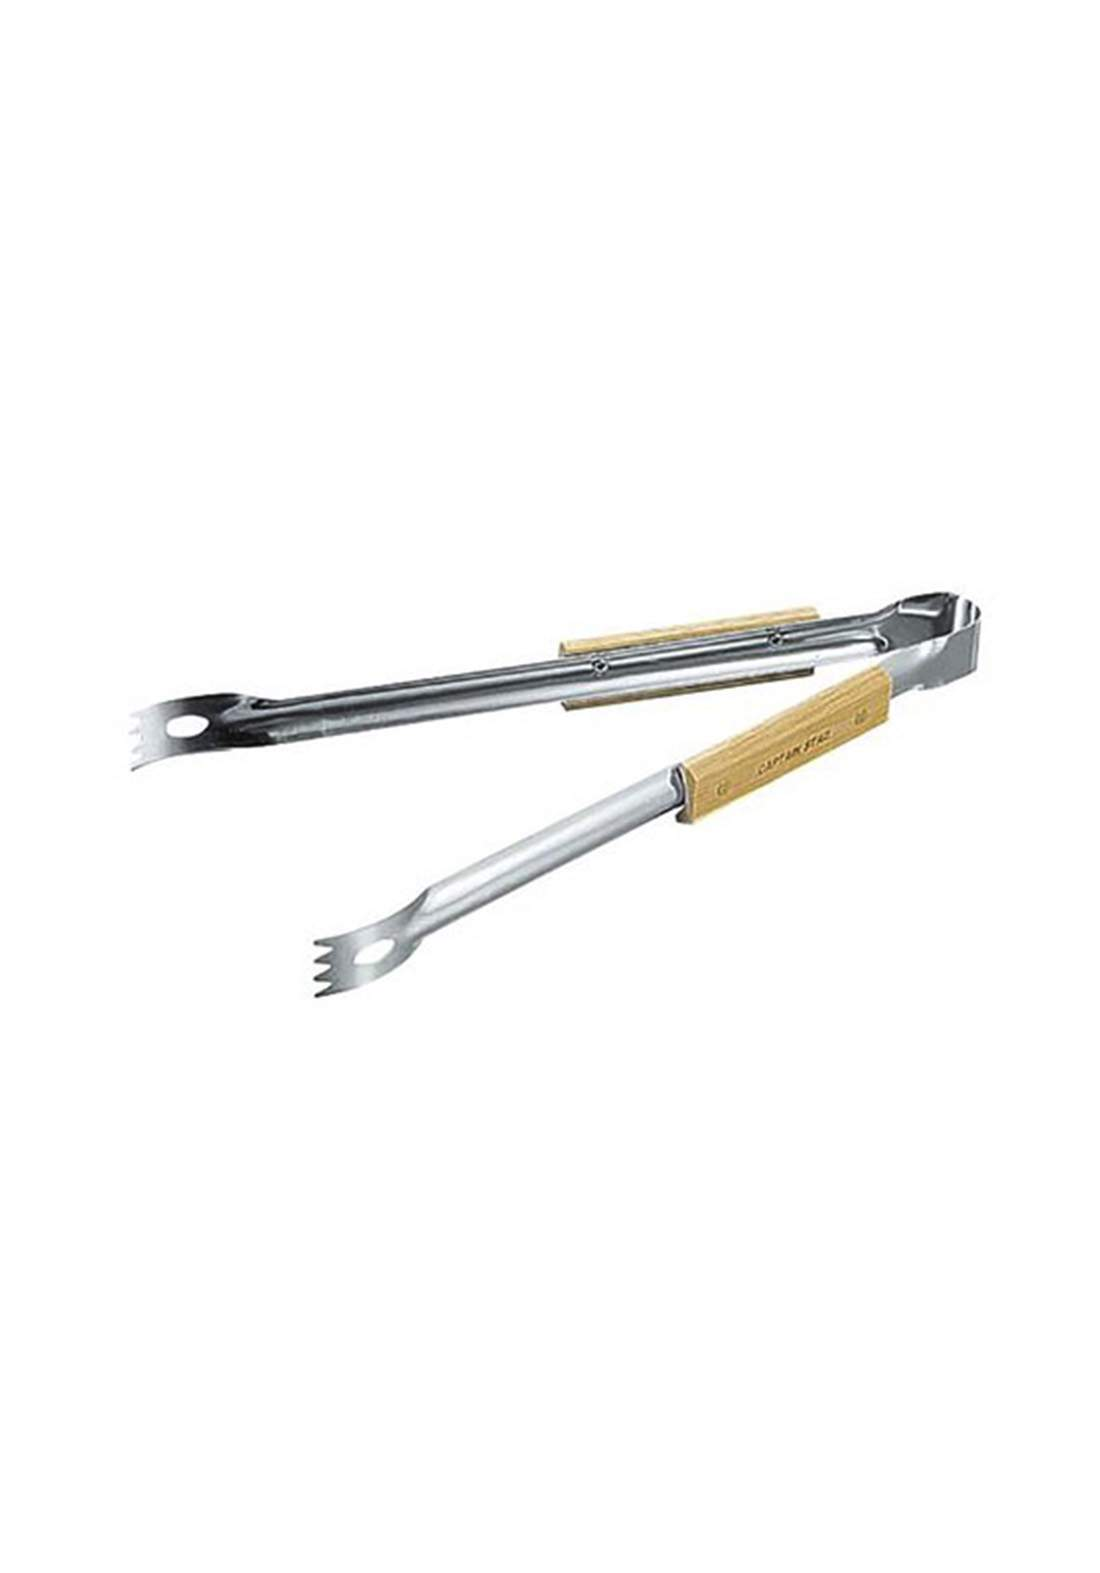 Captain Stag M-9090 Clark Wooden Pattern Barbecue Tongs ملقط شواء